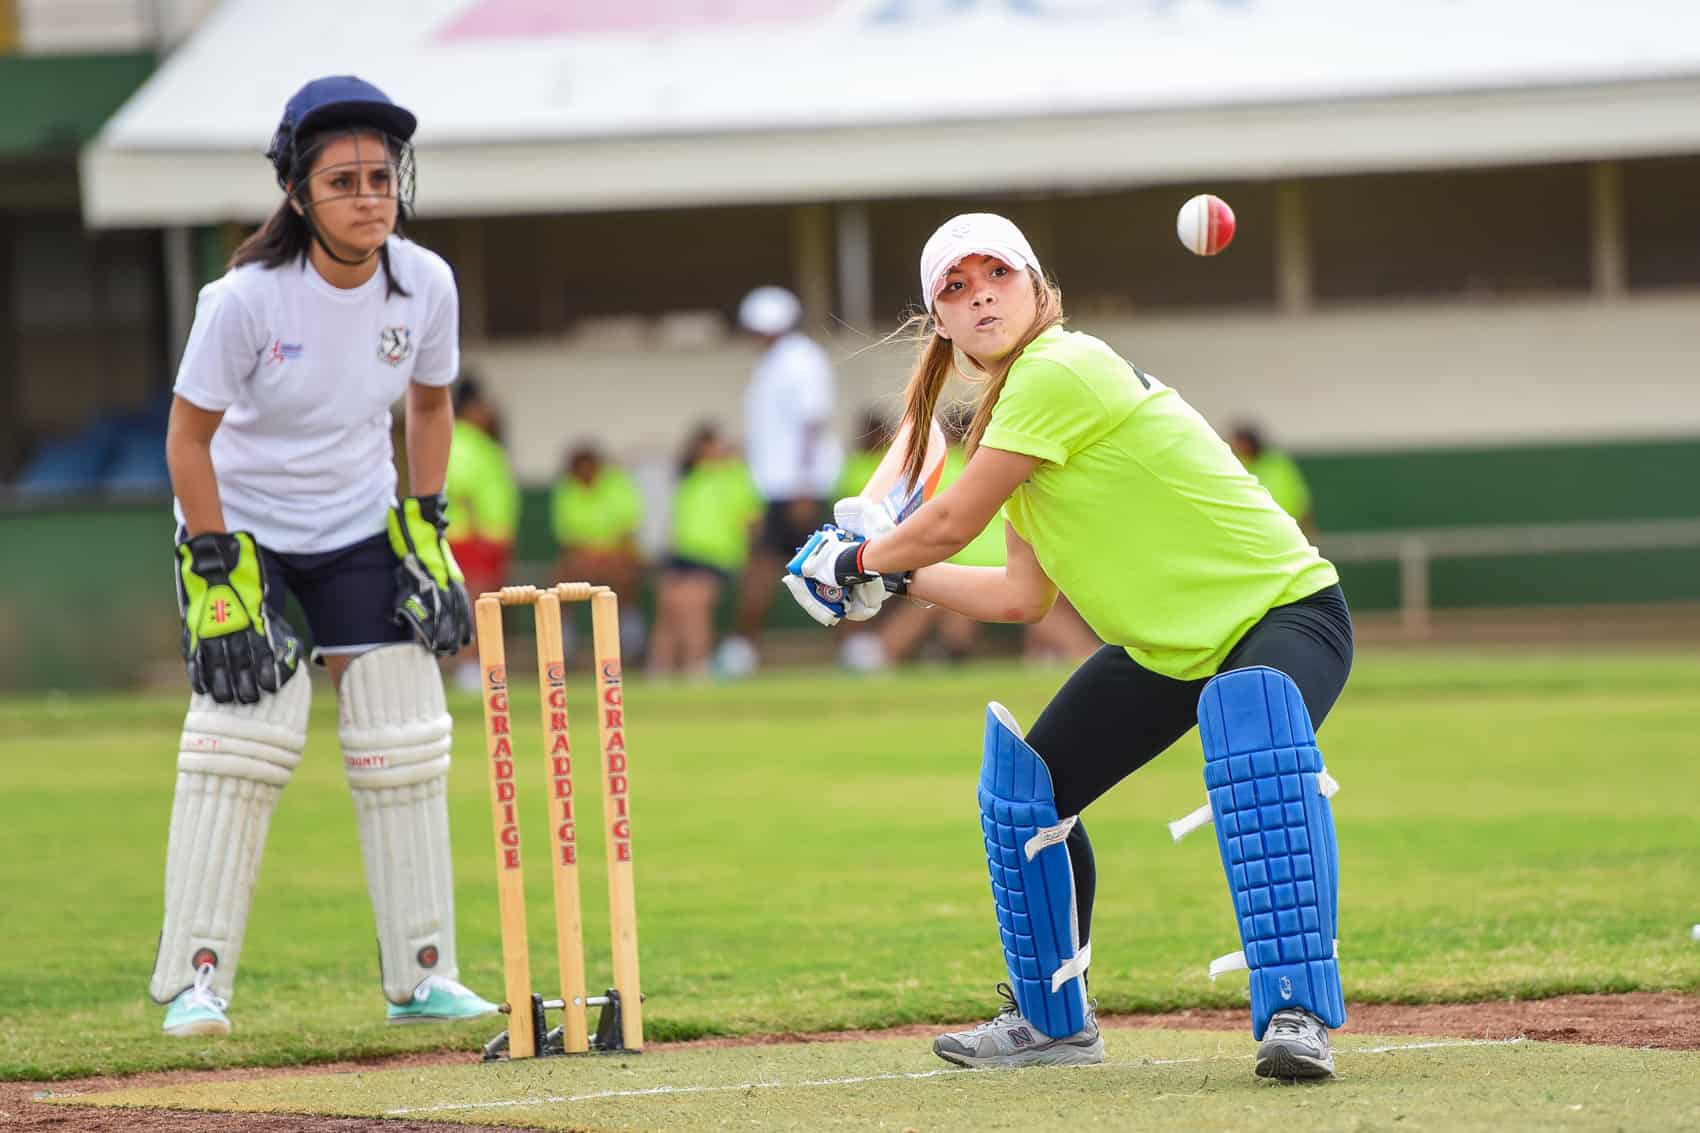 A girl bats during the inauguration of the Women's Cricket Association at the Antonio Escarré baseball stadium in San José, May 14, 2015.